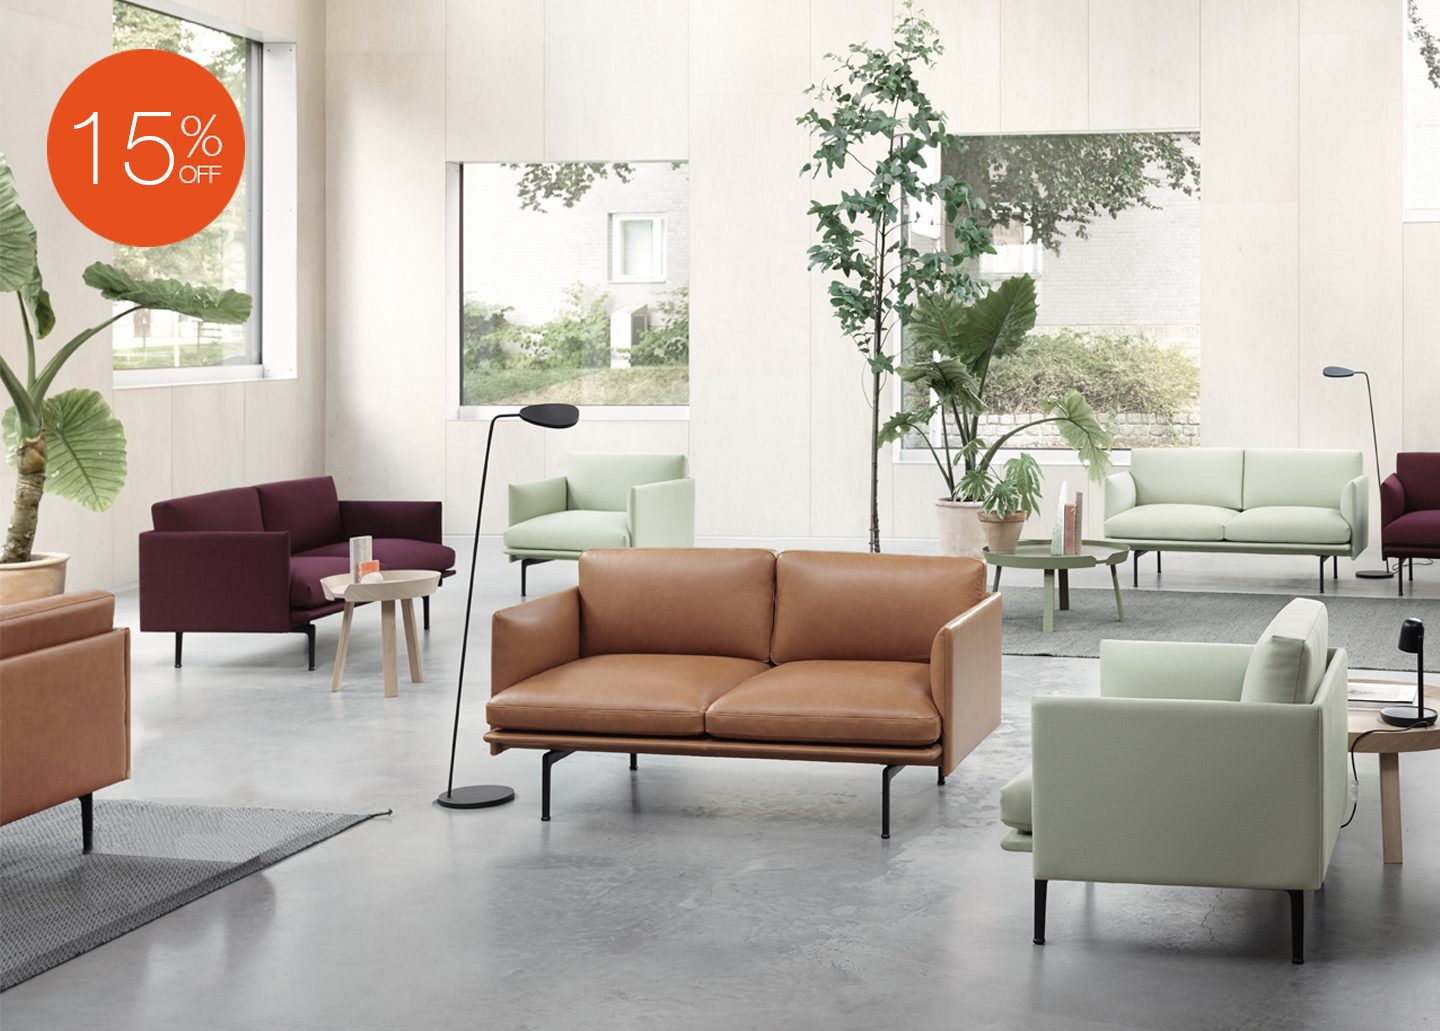 OUTLINE THREE SEATER LEATHER SOFA BY MUUTO